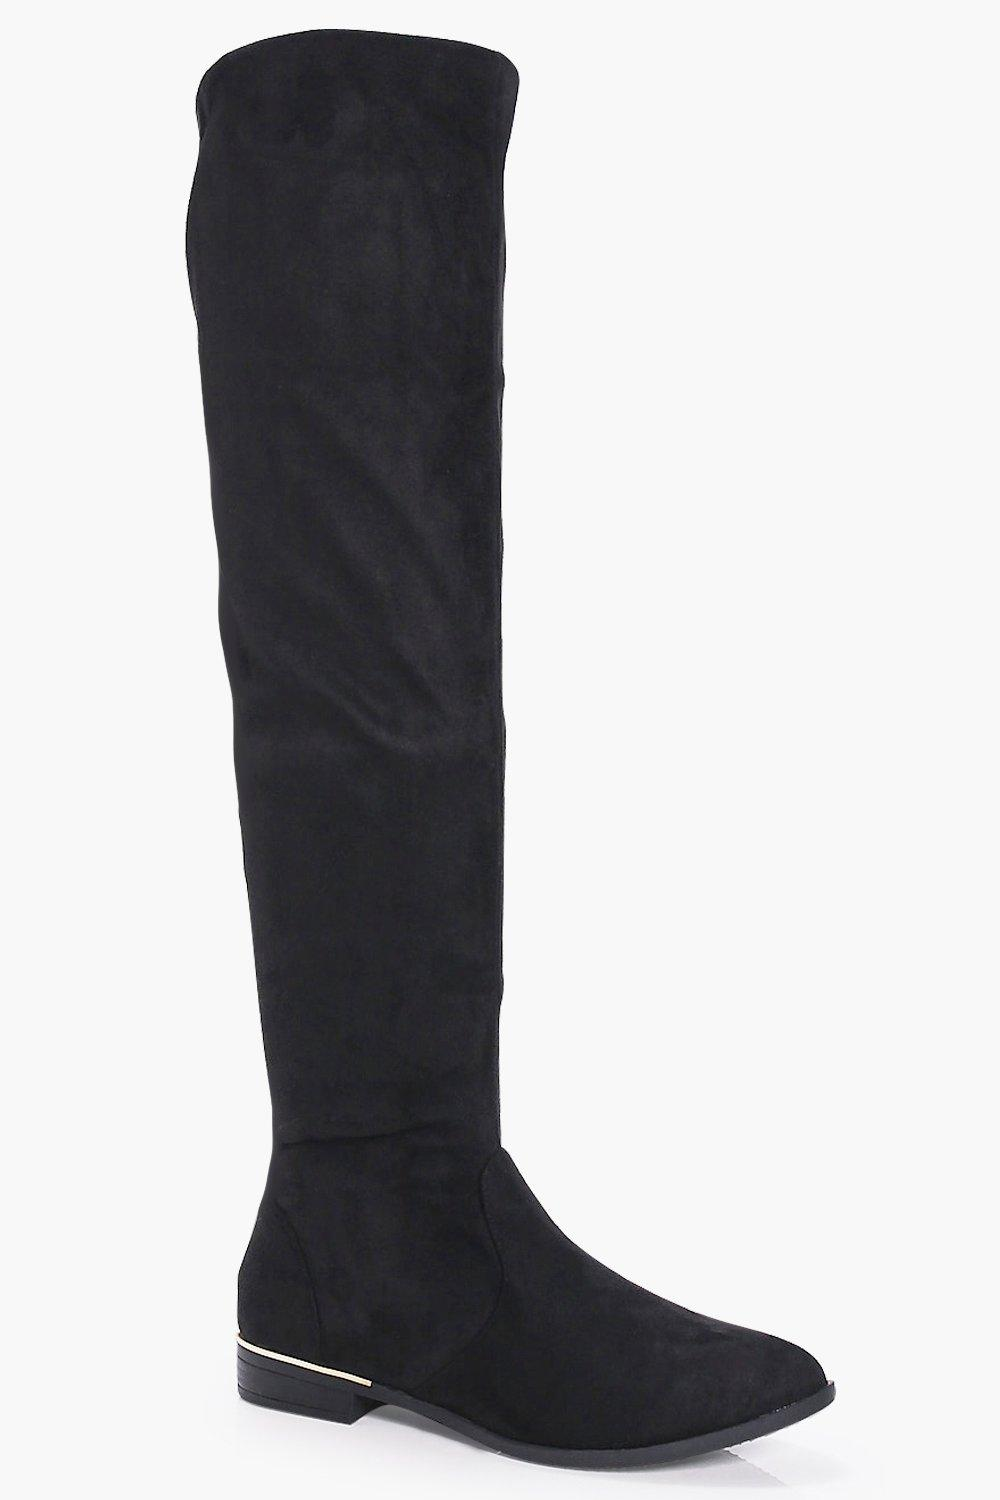 Sarah Gold Trim Knee High Boot